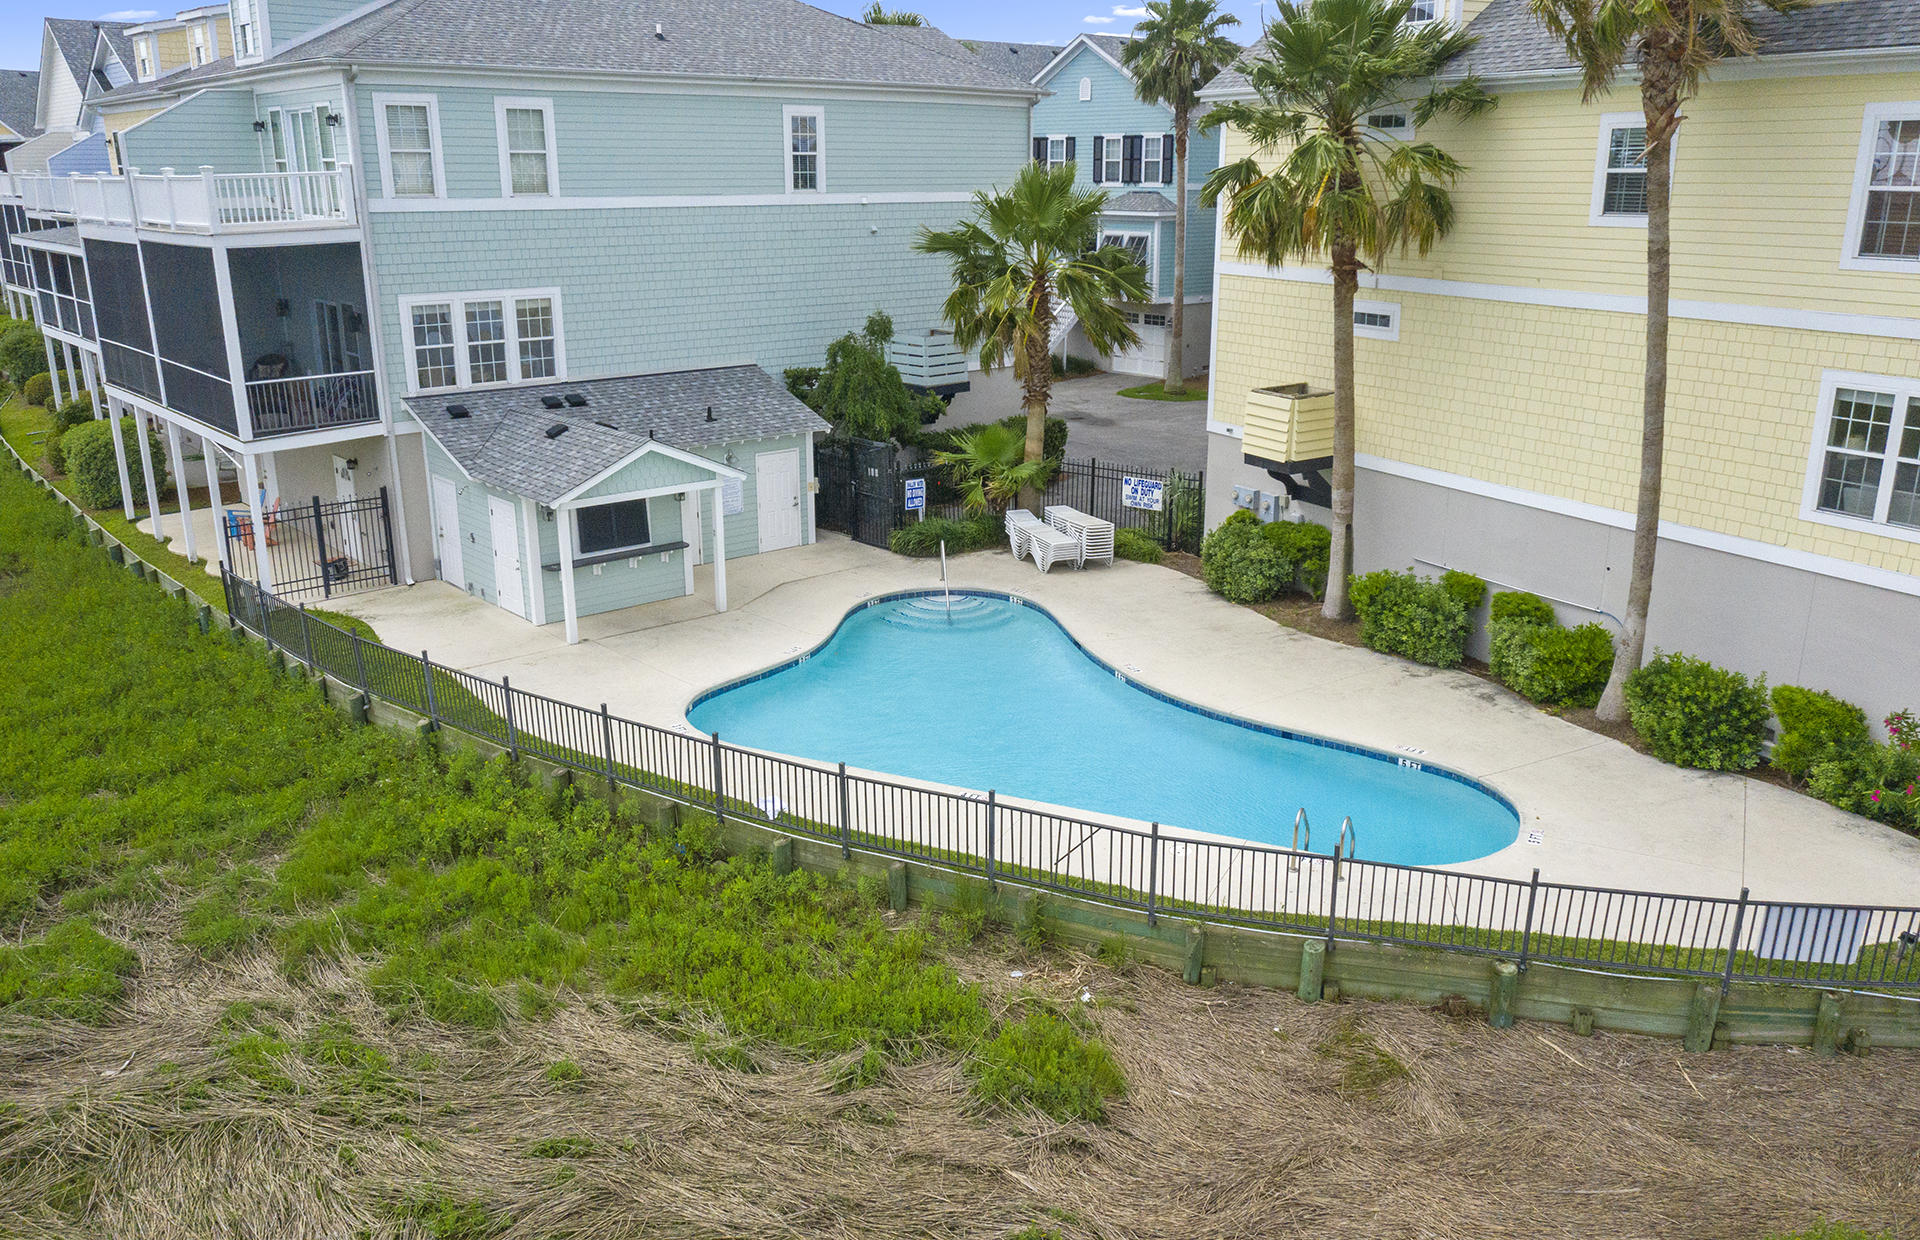 Waters Edge Homes For Sale - 80 2nd, Folly Beach, SC - 35